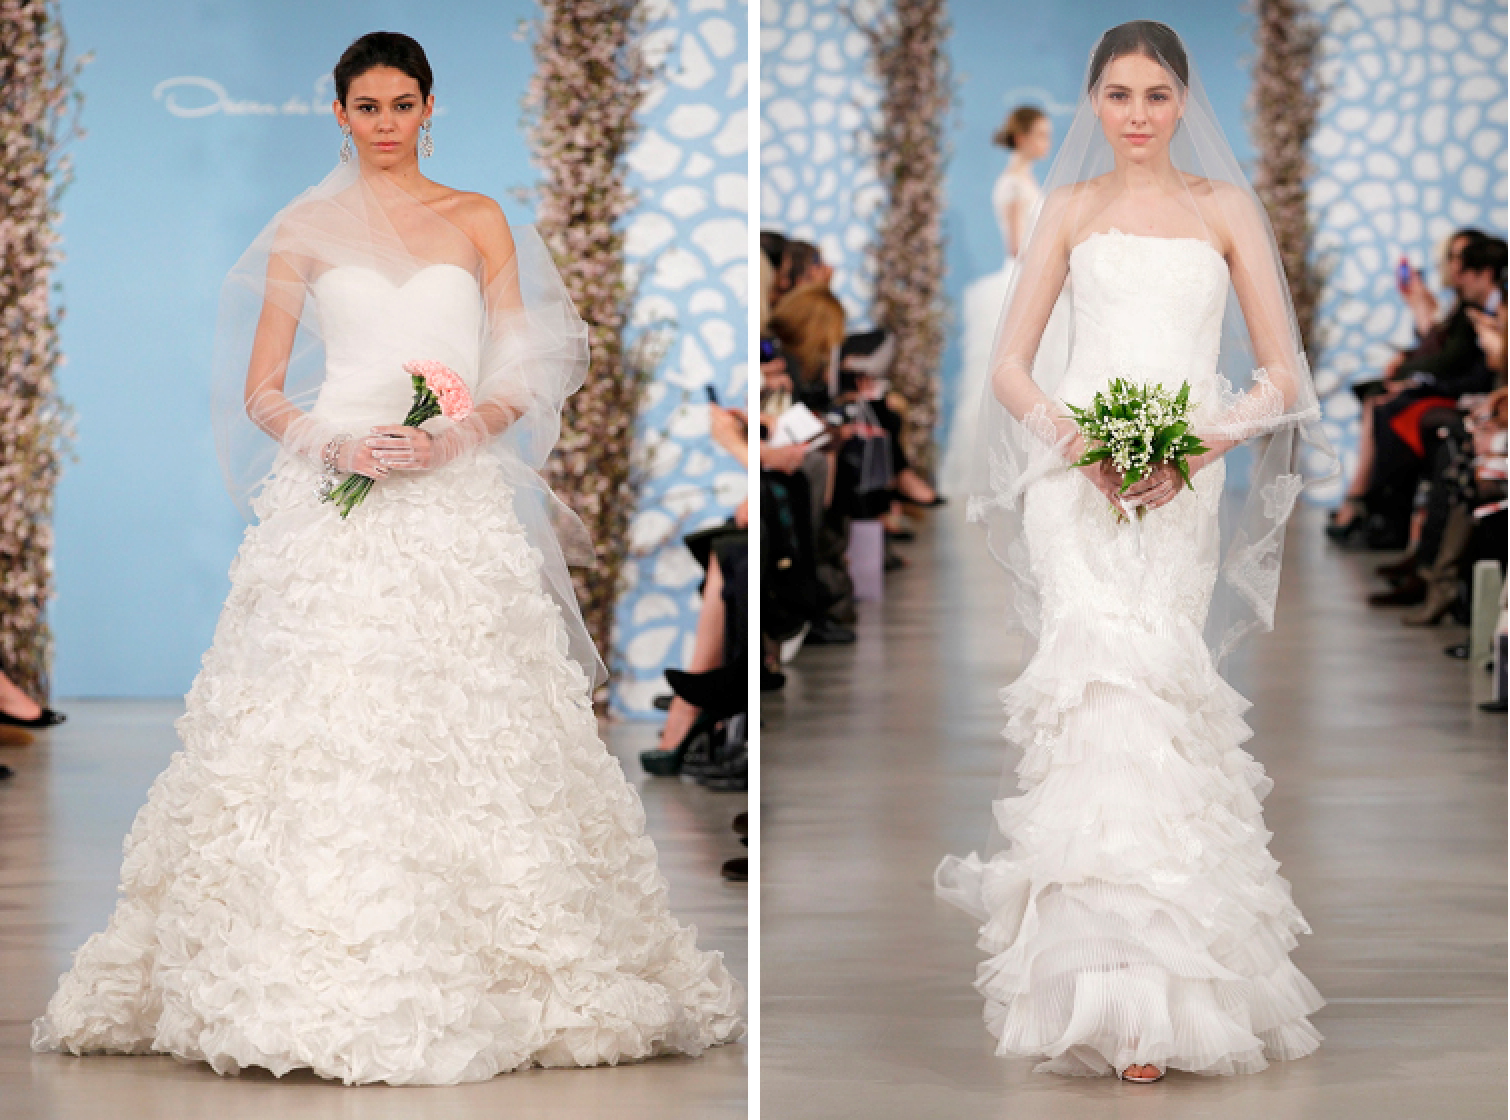 Wedding Dresses, Ruffled Wedding Dresses, Fashion, Oscar de la renta